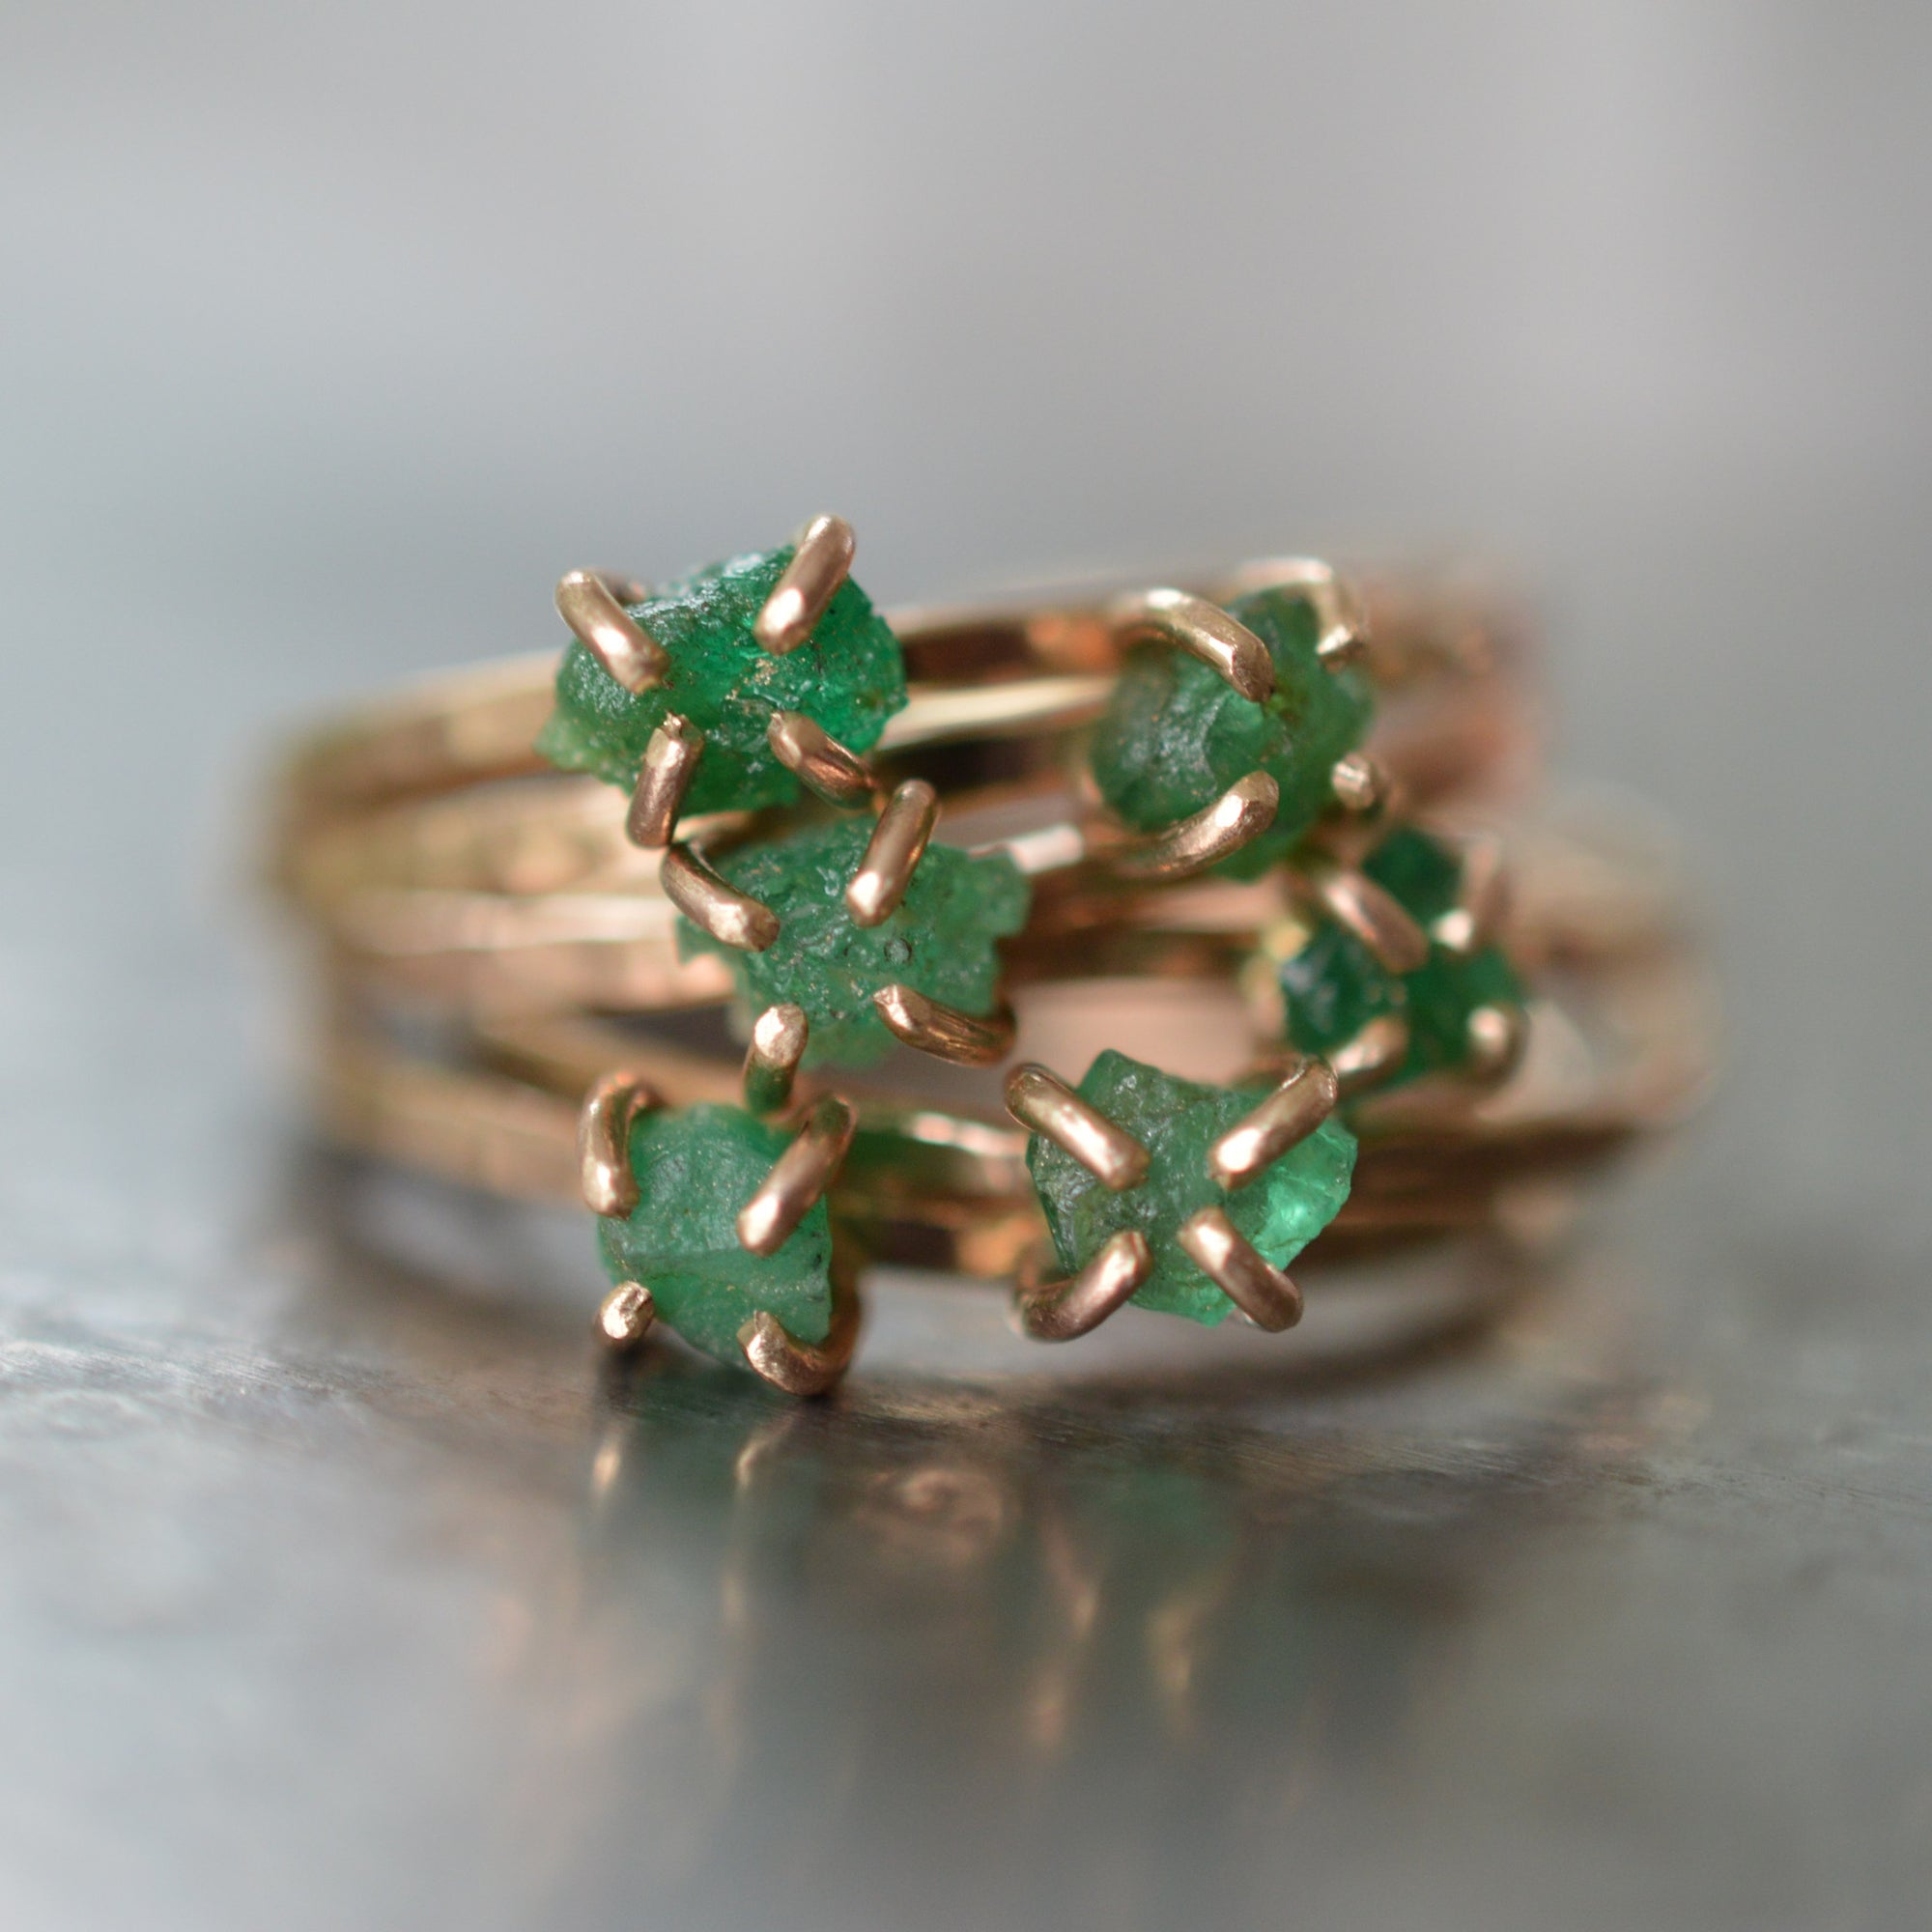 ring thin antique rings birthstone emerald sterling pin rounds emeral dull may silver promise for her matte gold finish